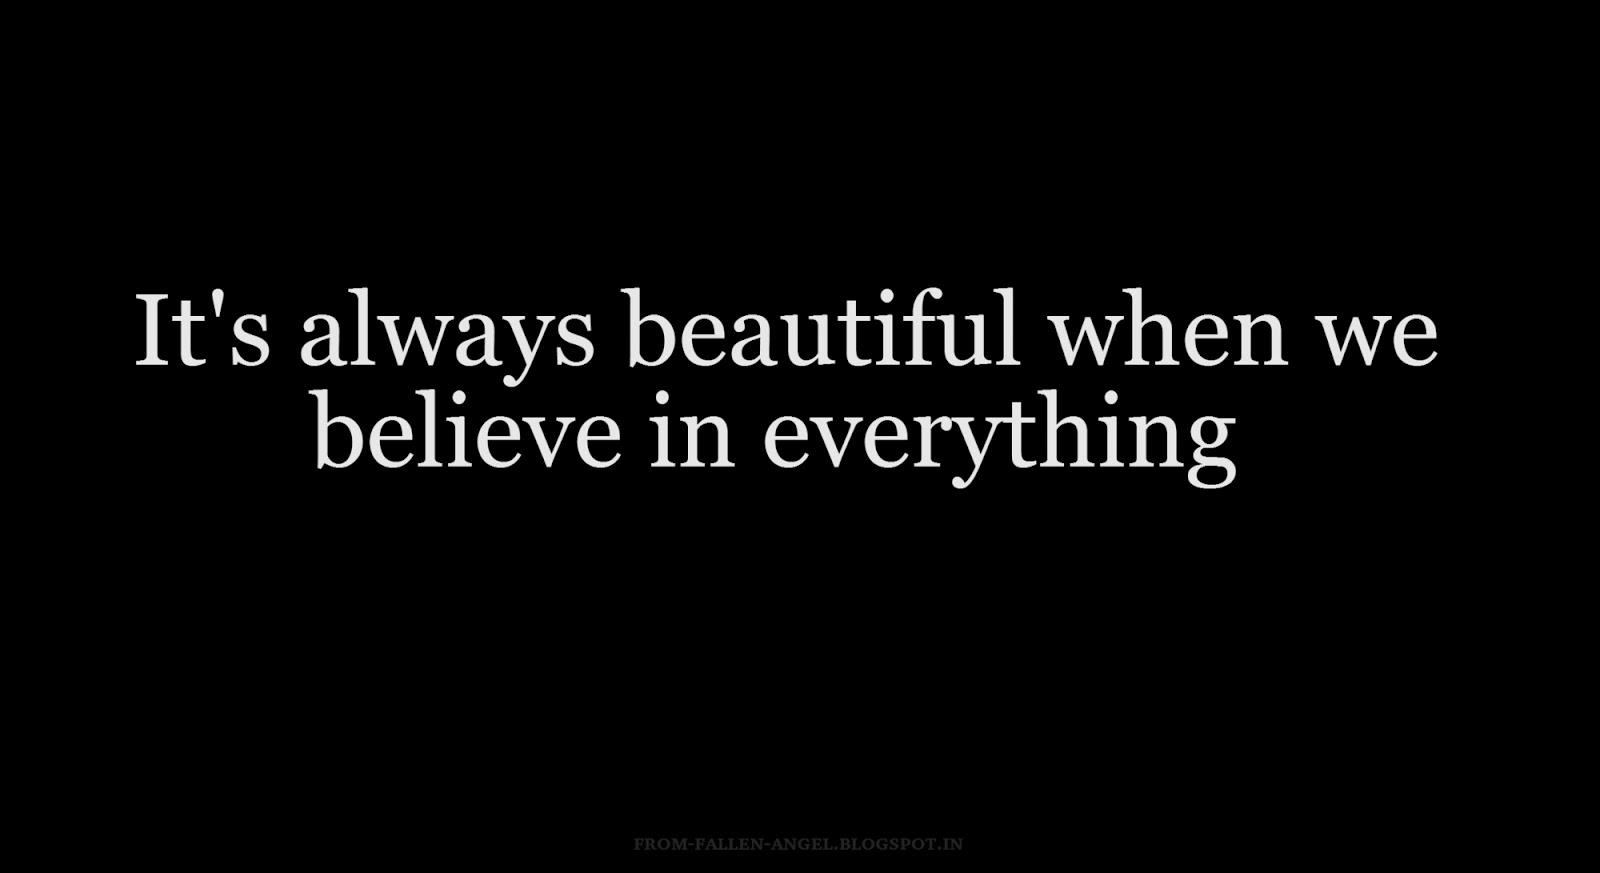 It's always beautiful when we believe in everything